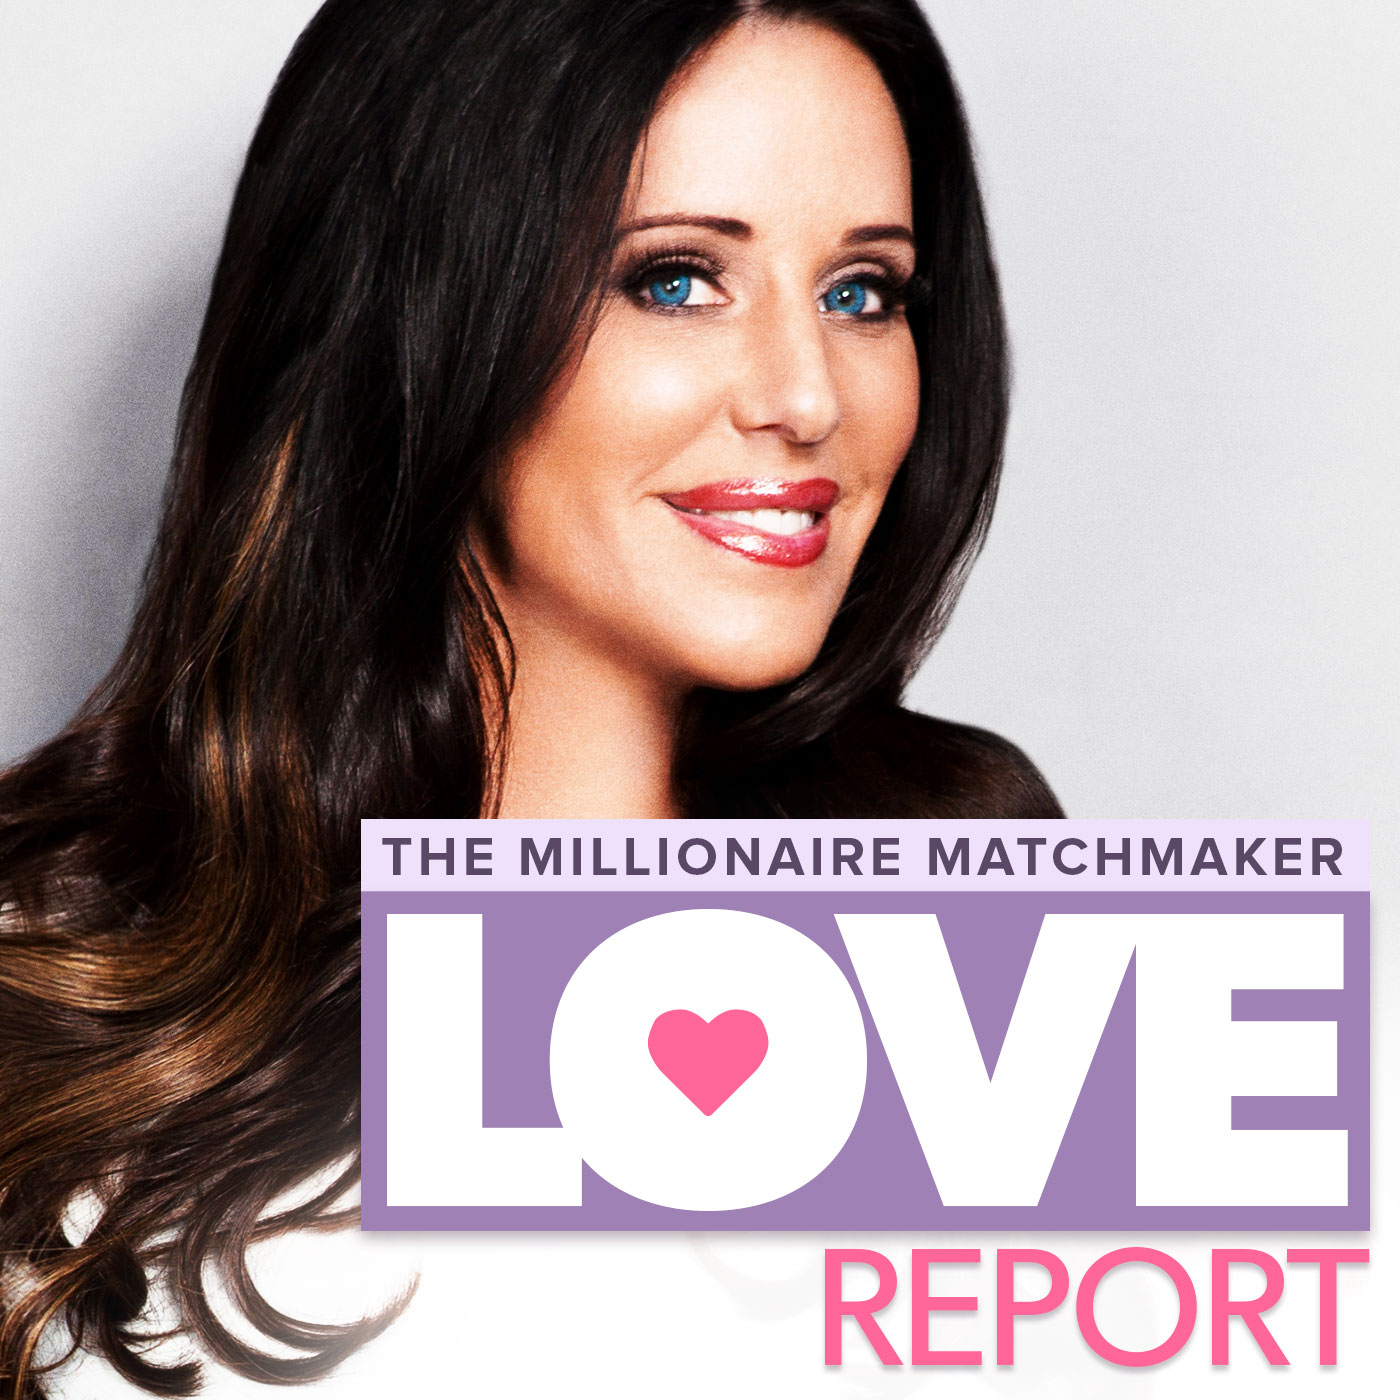 patty millionaire matchmaker dating tips